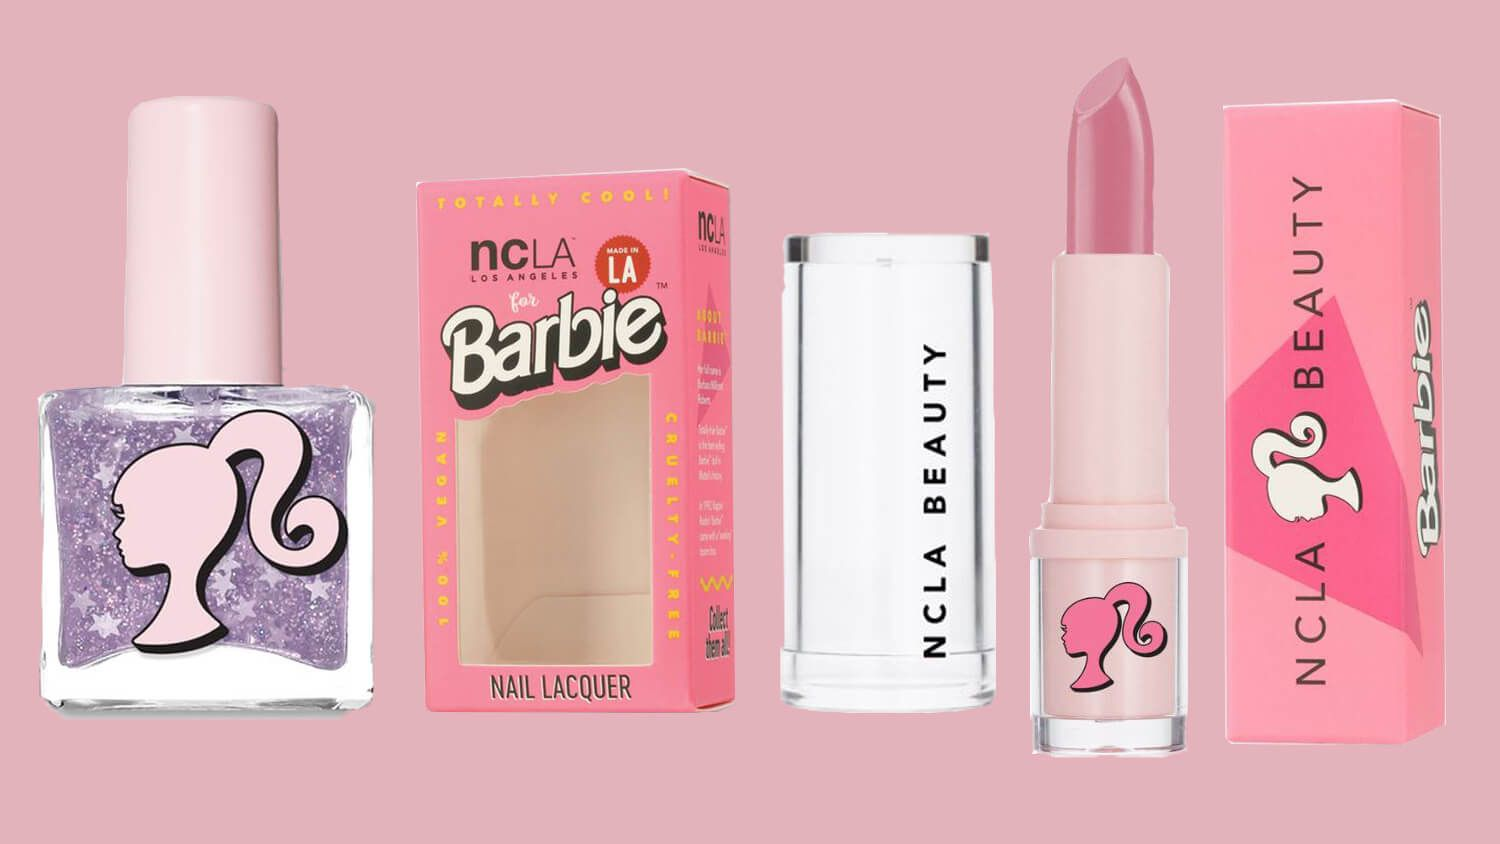 90s Inspired Vegan Barbie Makeup Range Launched By Ncla Barbie